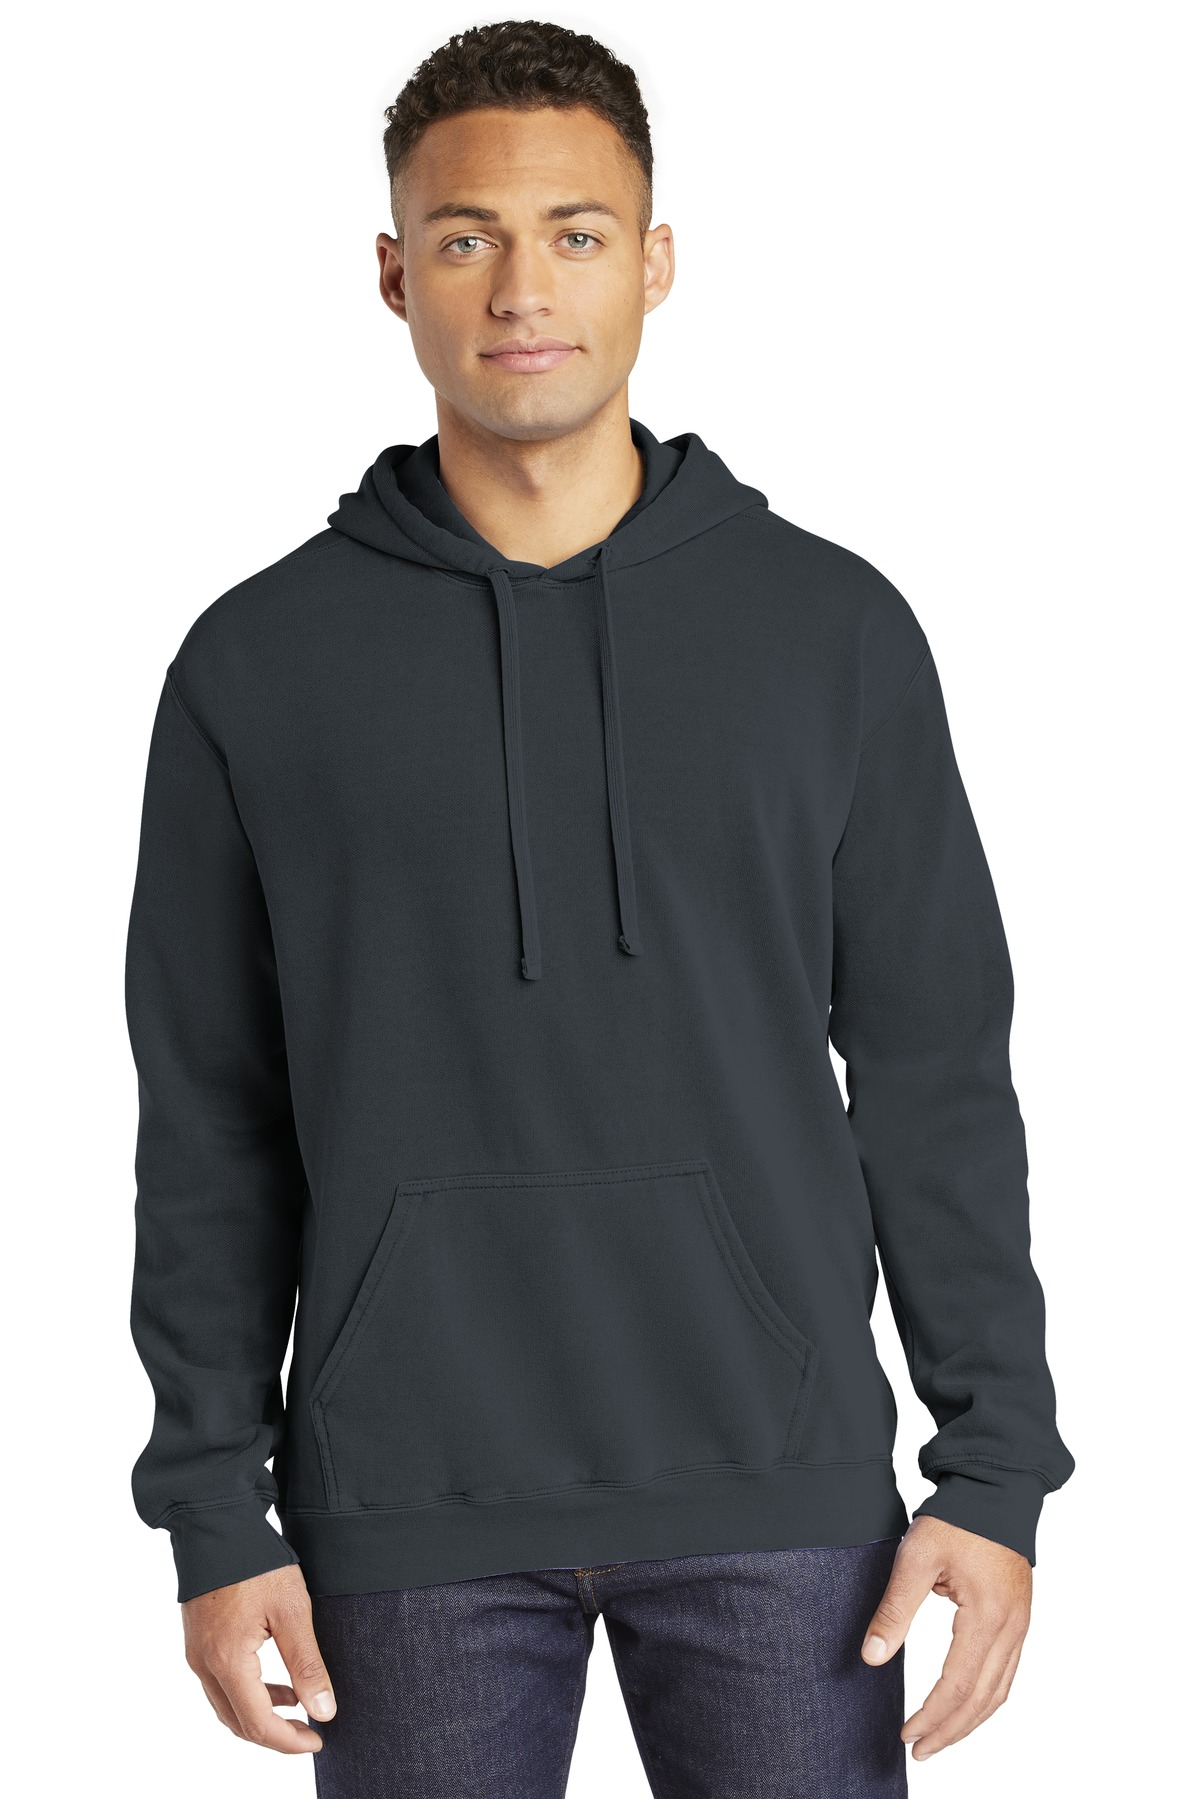 COMFORT COLORS  ®  Ring Spun Hooded Sweatshirt. 1567 - Denim